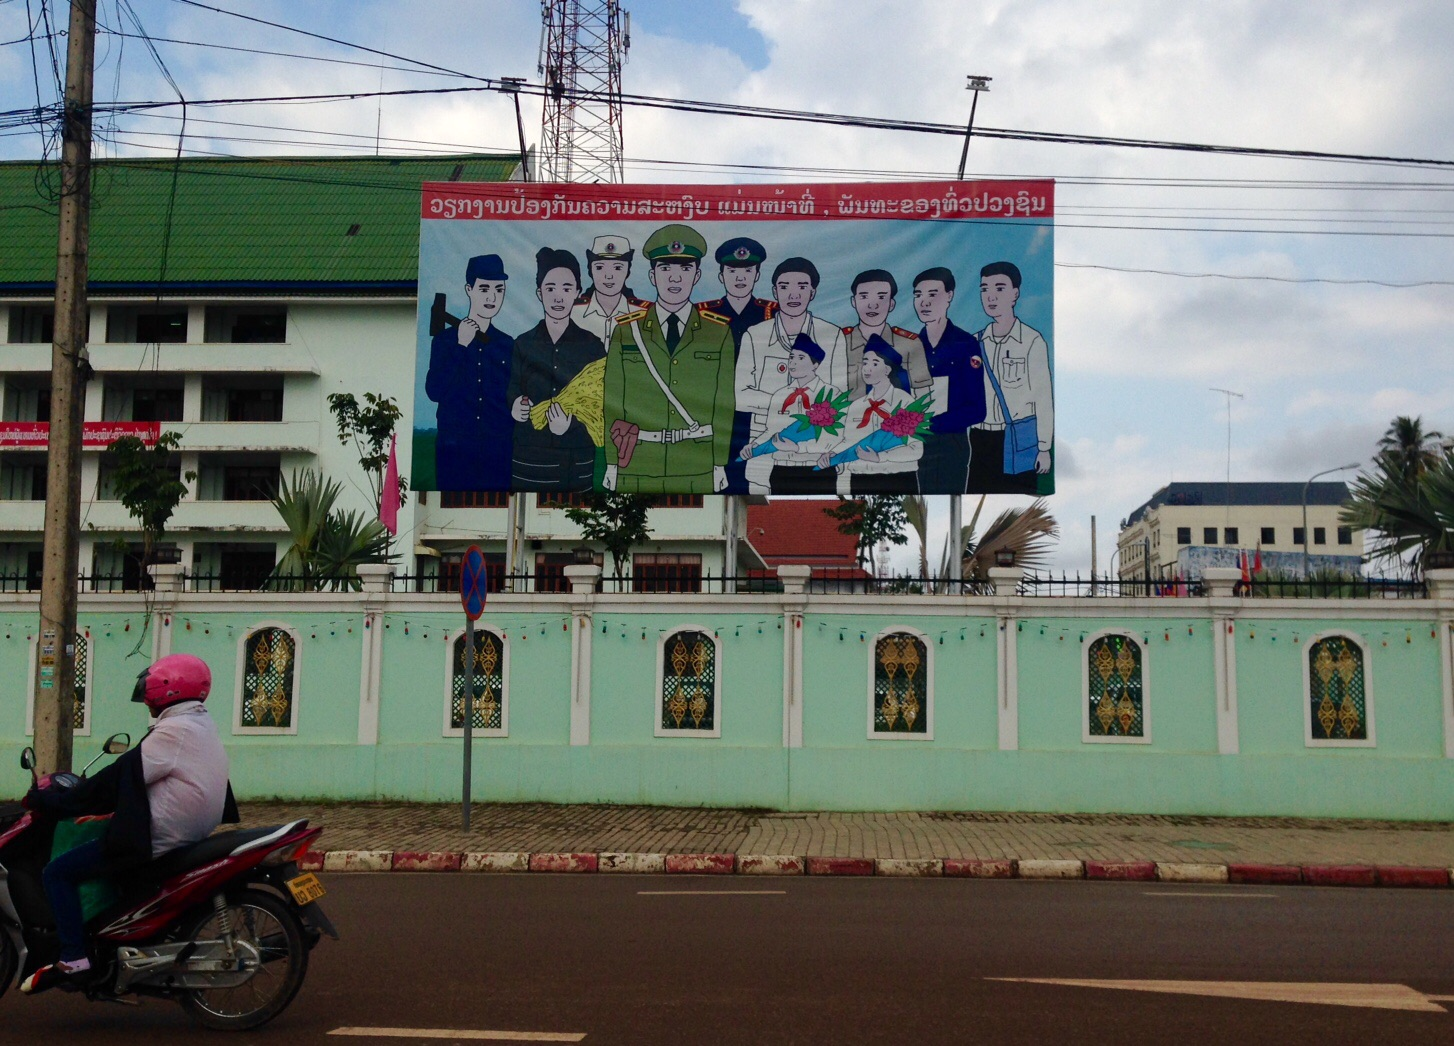 Solidarity in the state. A propaganda poster sits in front of one of Vientiane's government ministries